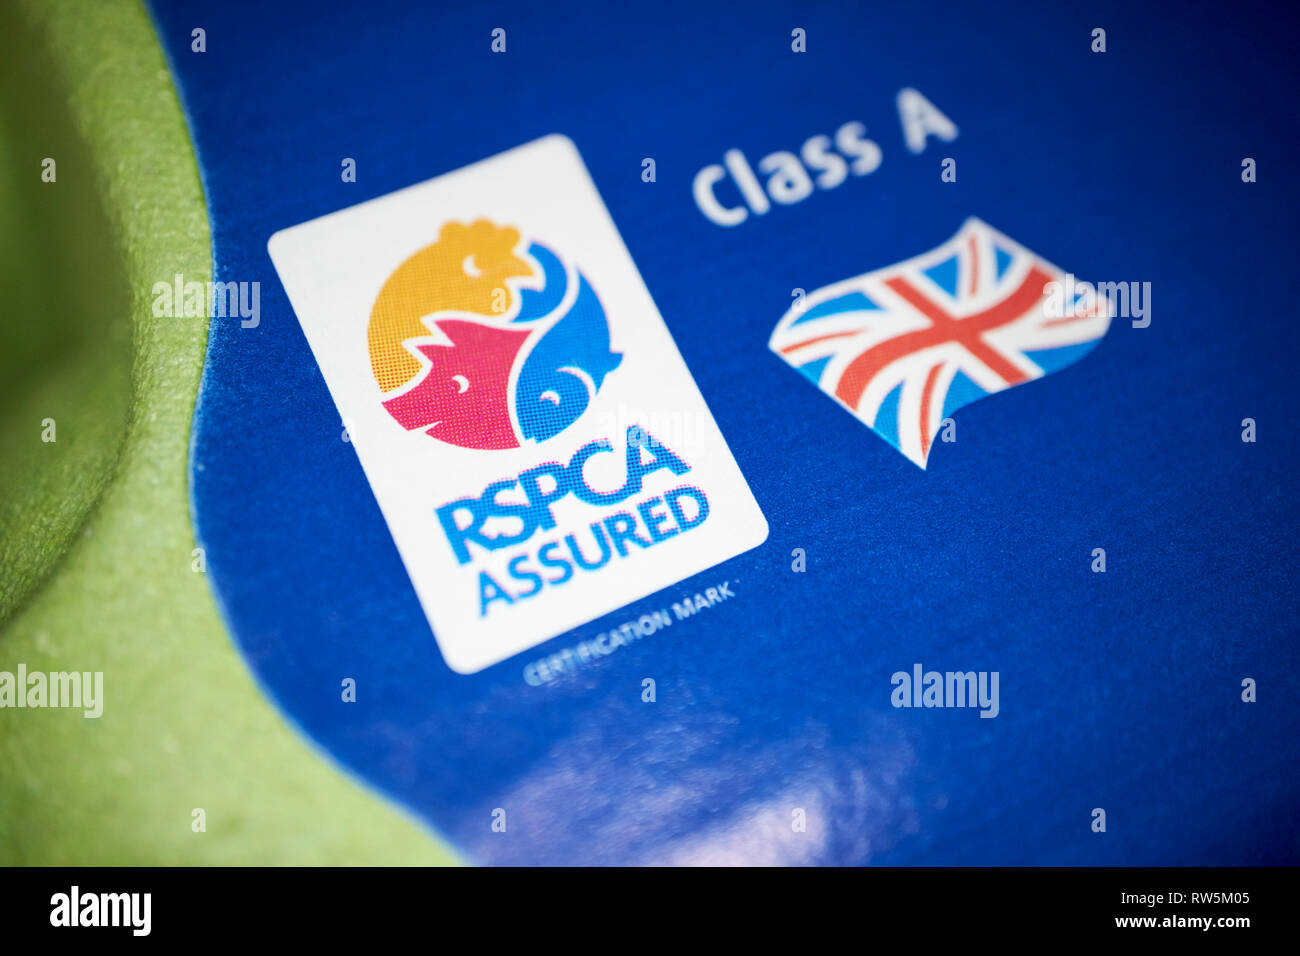 rspca animal welfare standards mark and union flag on a pack of british eggs - Stock Image